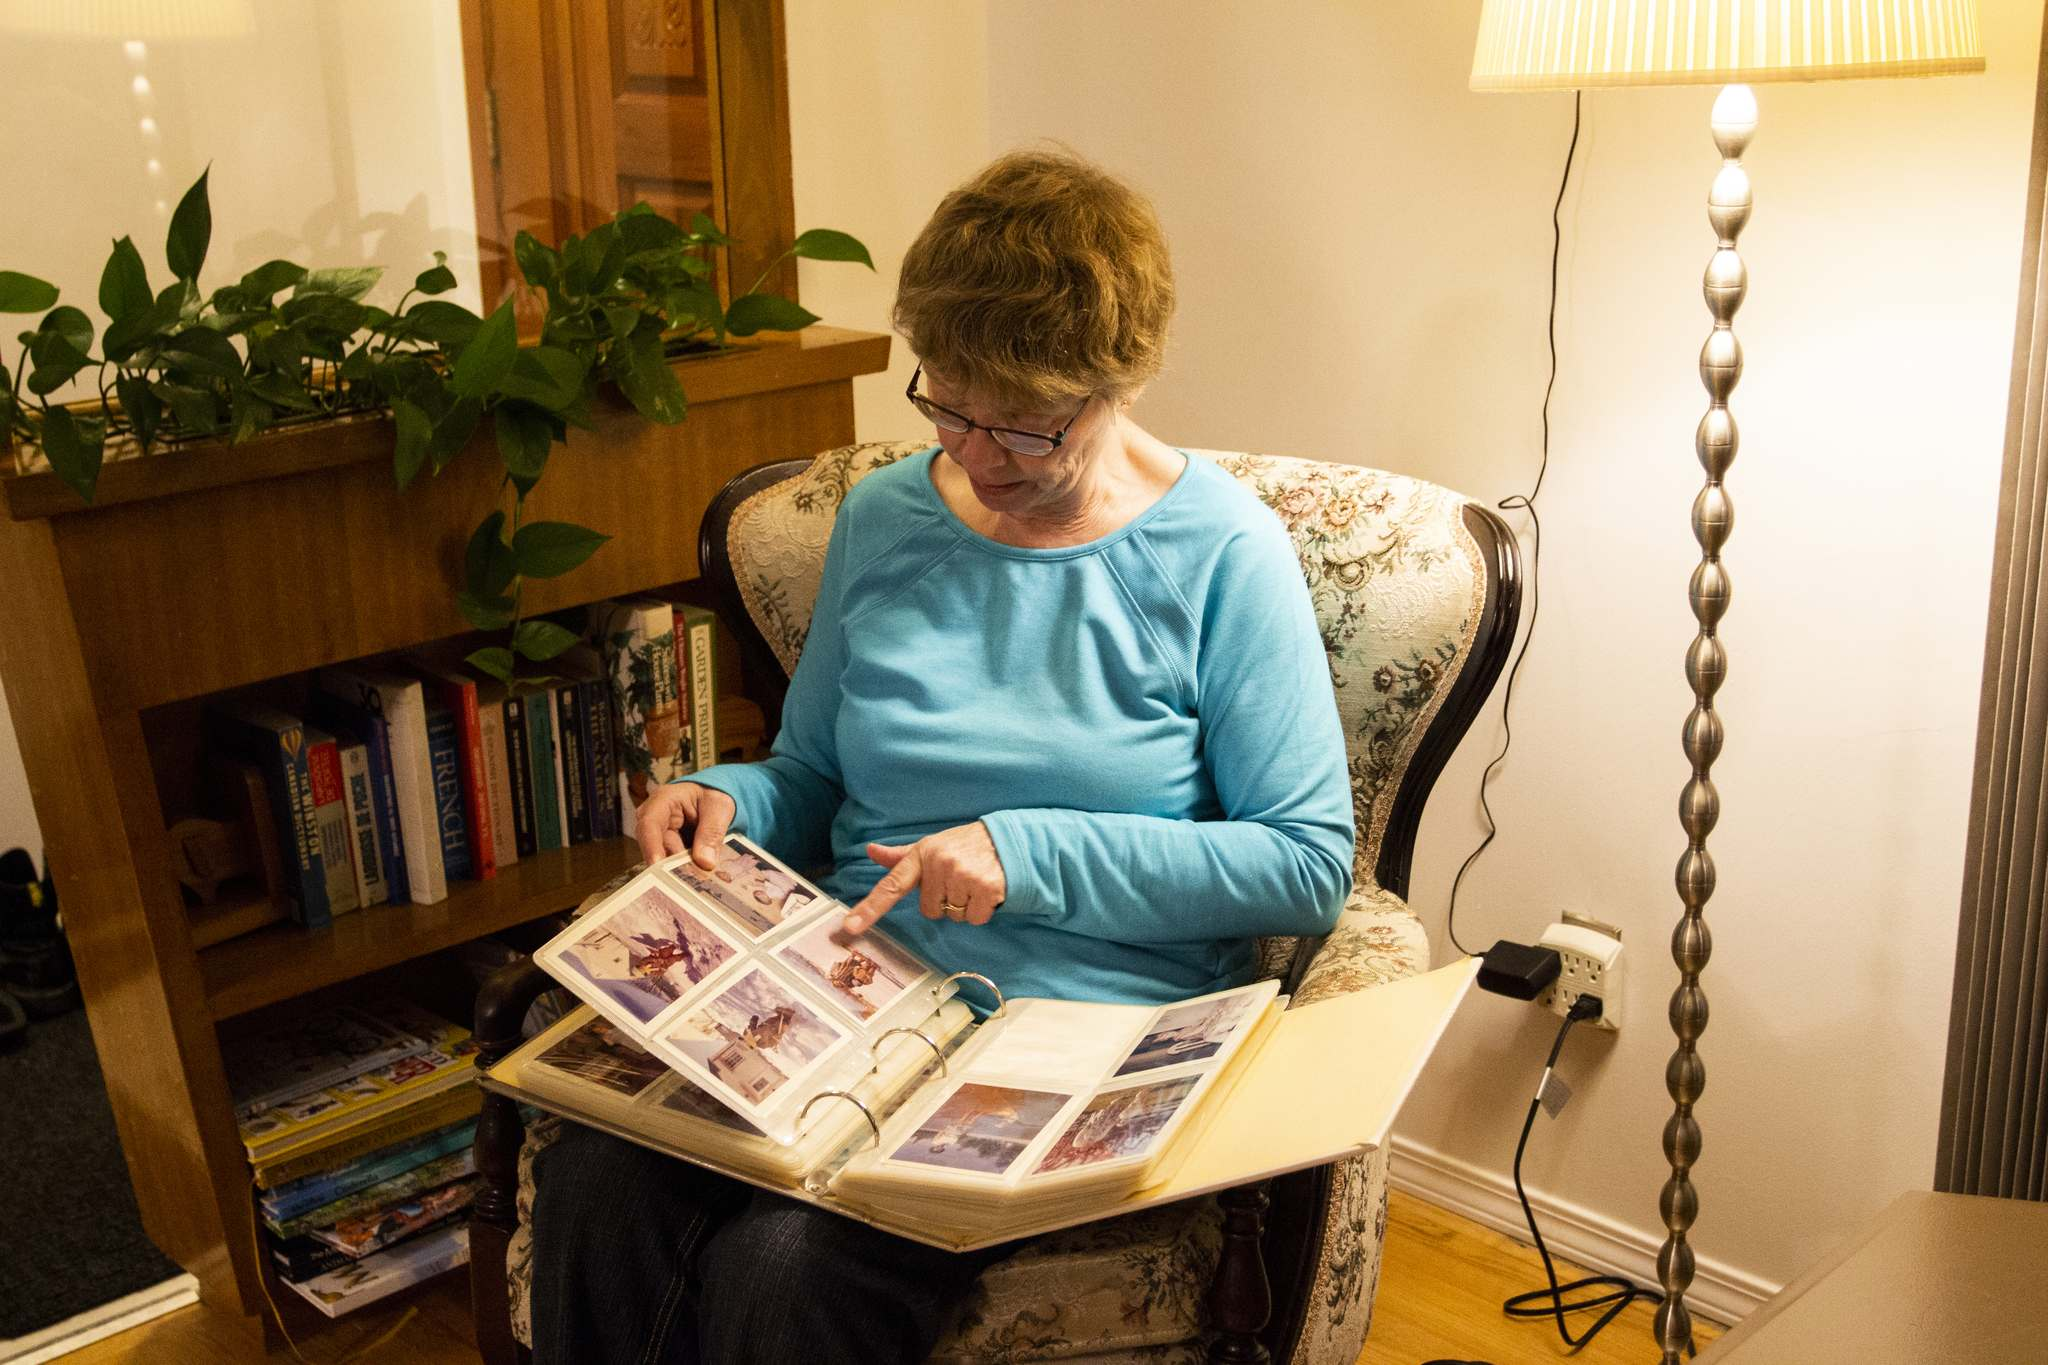 Dorothy Stephens looks through an album with photos of her mother, who died from complications of Alzheimer's disease in 2014.